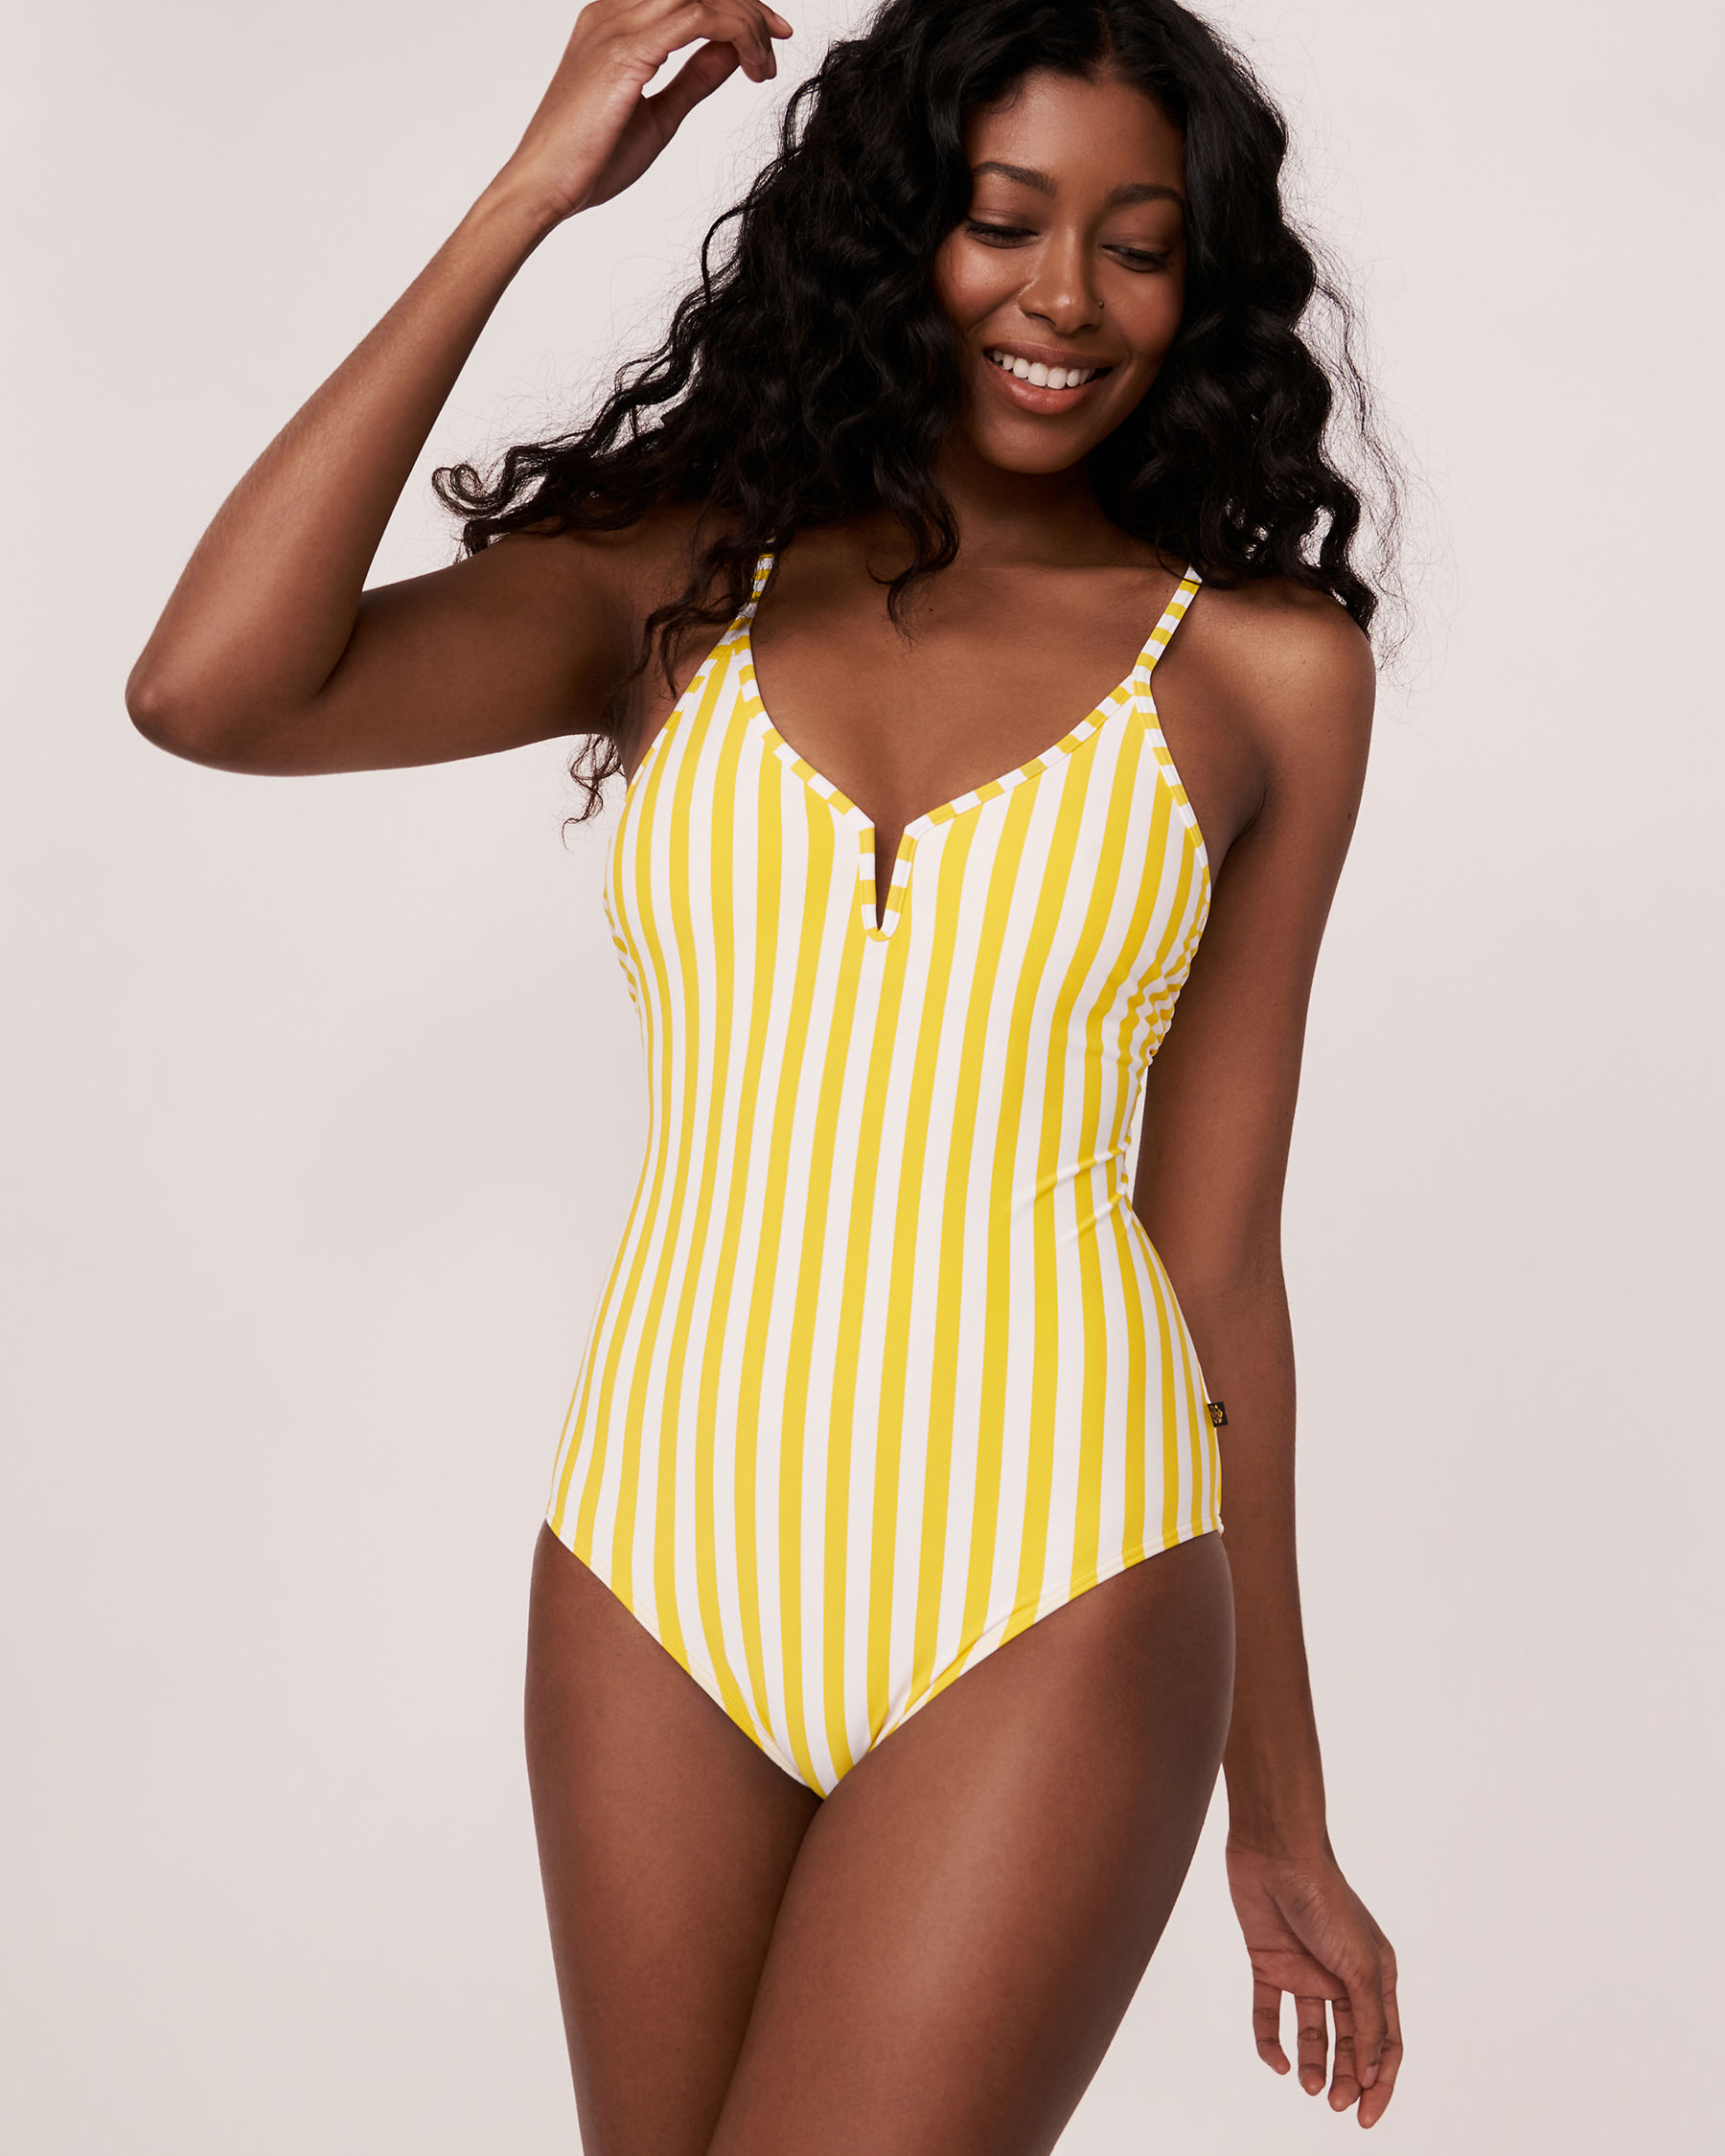 AQUAROSE YELLOW SUBMARINE Recycled Fibers One-piece Swimsuit Yellow and white stripes 70400016 - View1